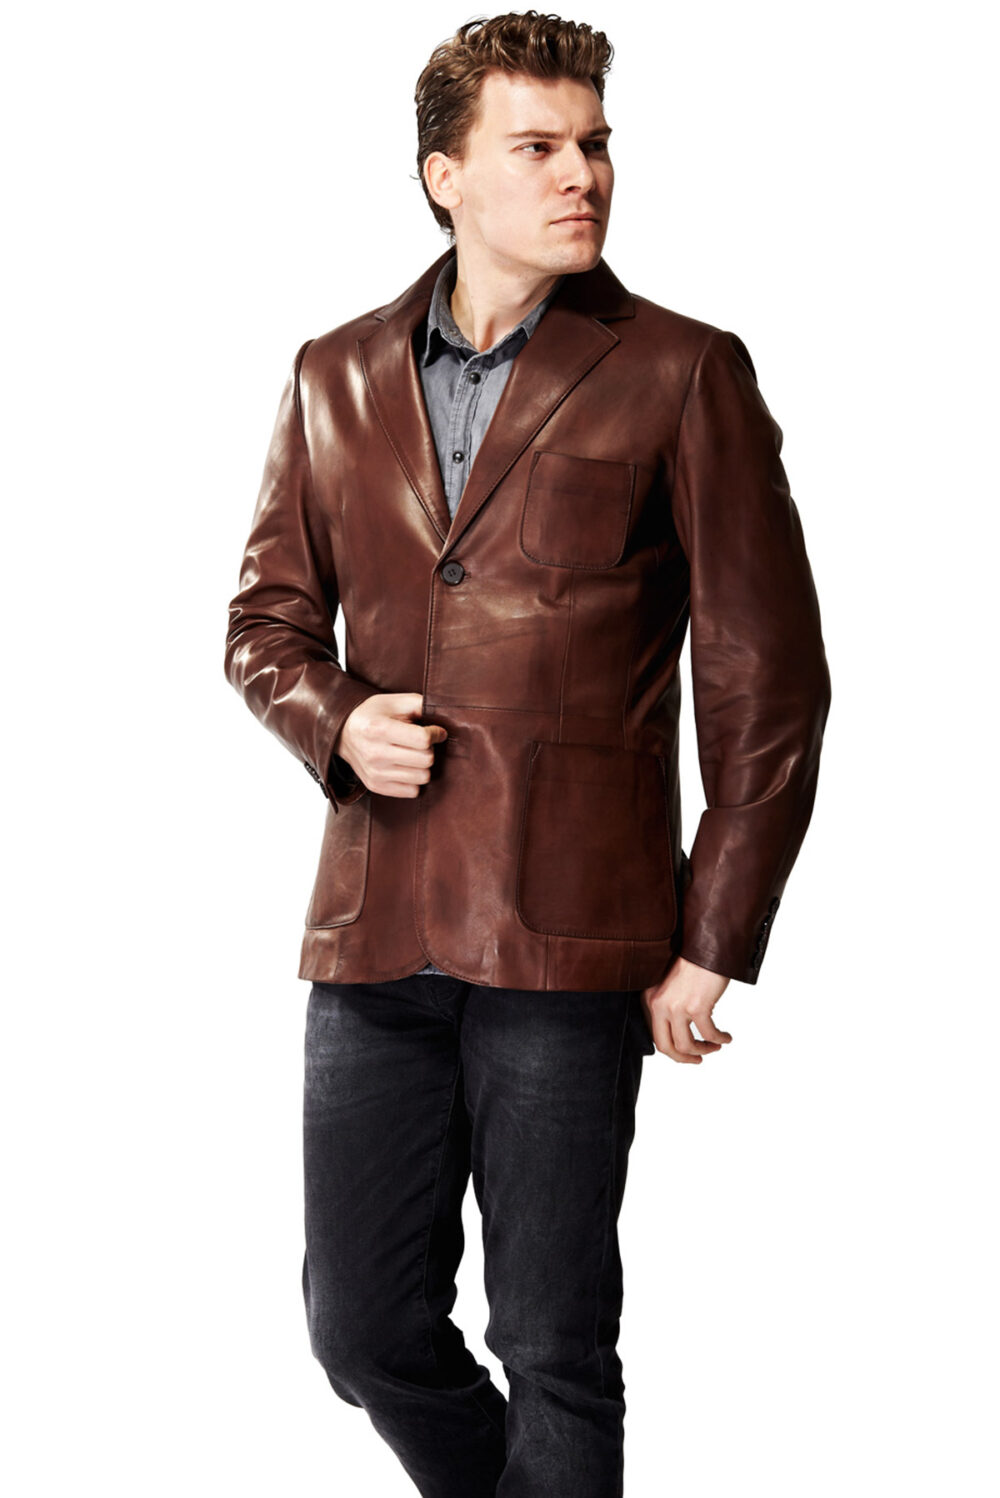 fendi men's leather jacket